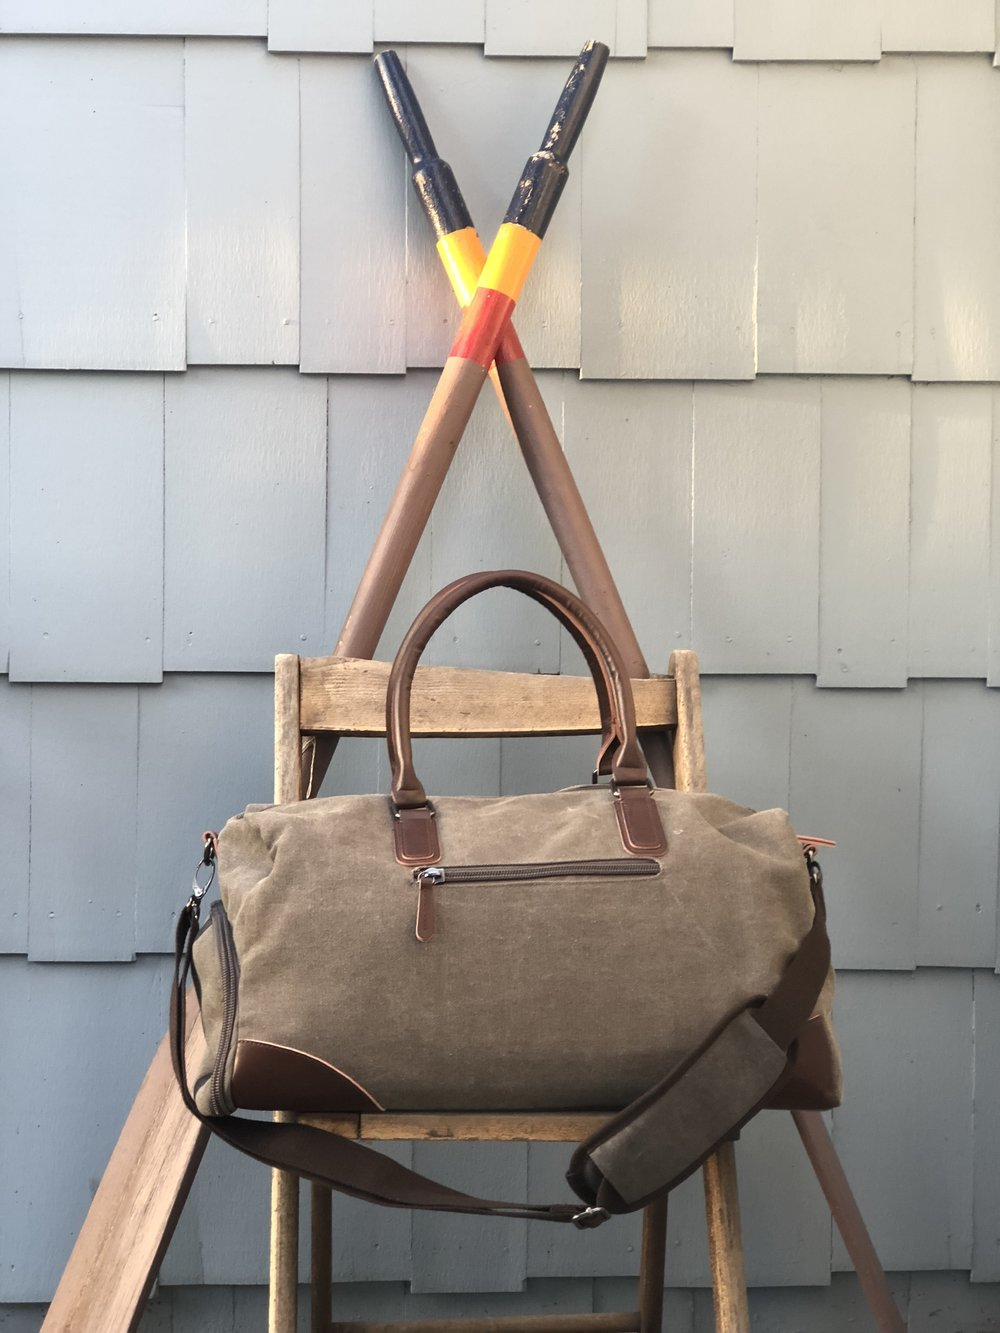 - This Weekender Bag is perfect for each of us to bring on any four day trips. It has a large zippered shoe pouch at the bottom of the bag, and inside the bag there are organized compartments. It also comes with a large toiletry case. At less than $50 it's the perfect nicer gift for anyone you know who travels.